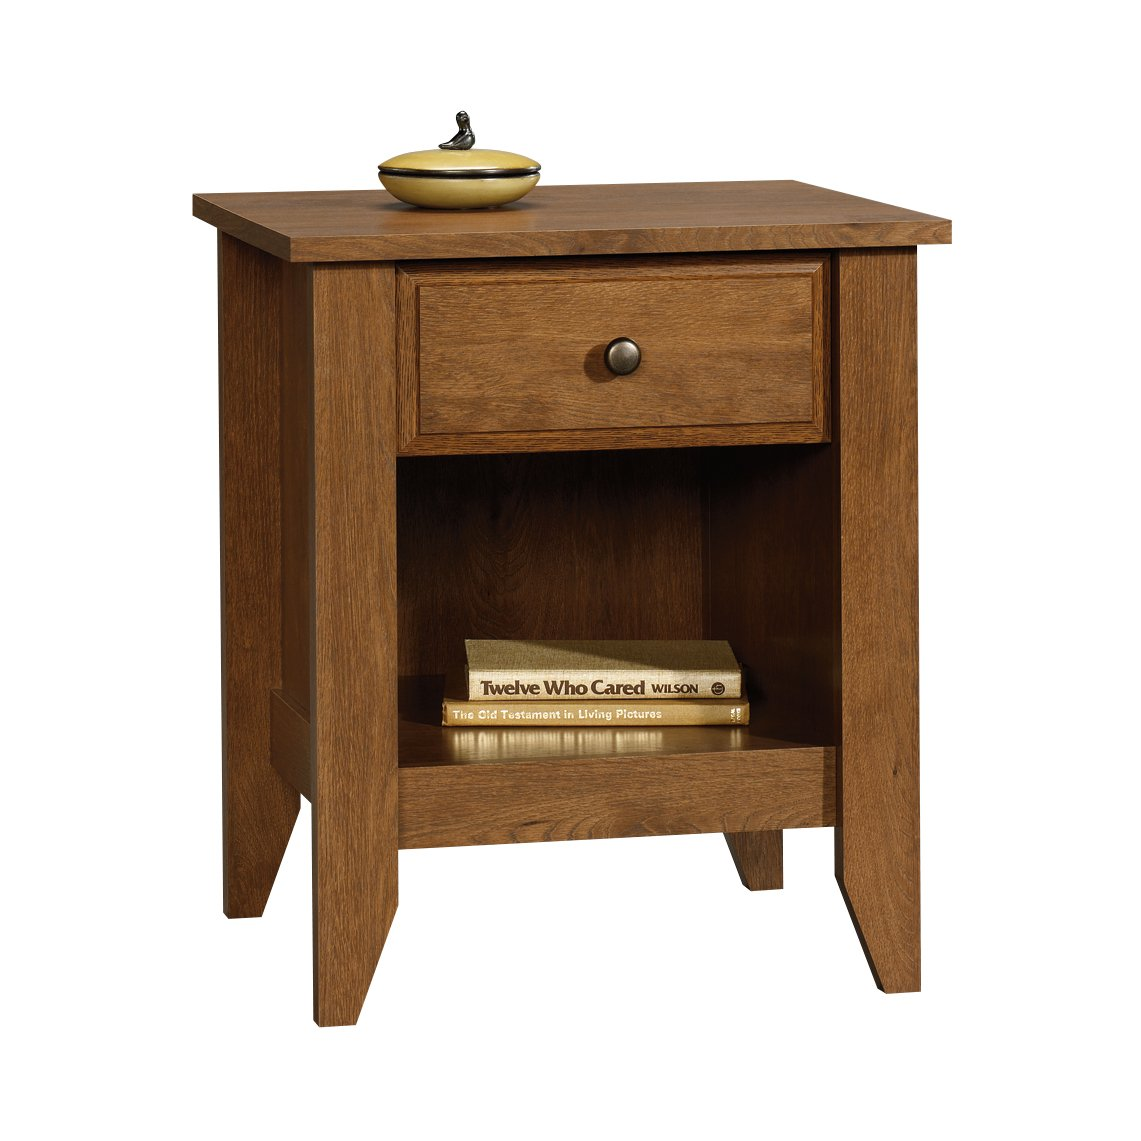 Sauder Shoal Creek Night Stand, Oiled Oak finish